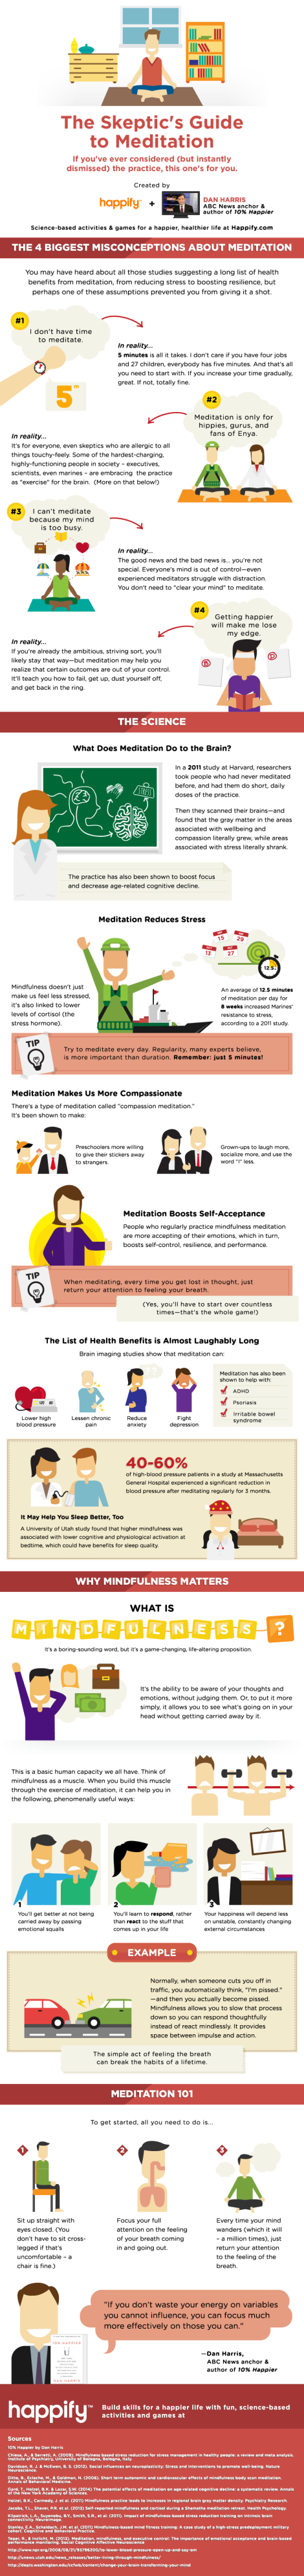 The Skeptic's Guide To Meditation Infographic